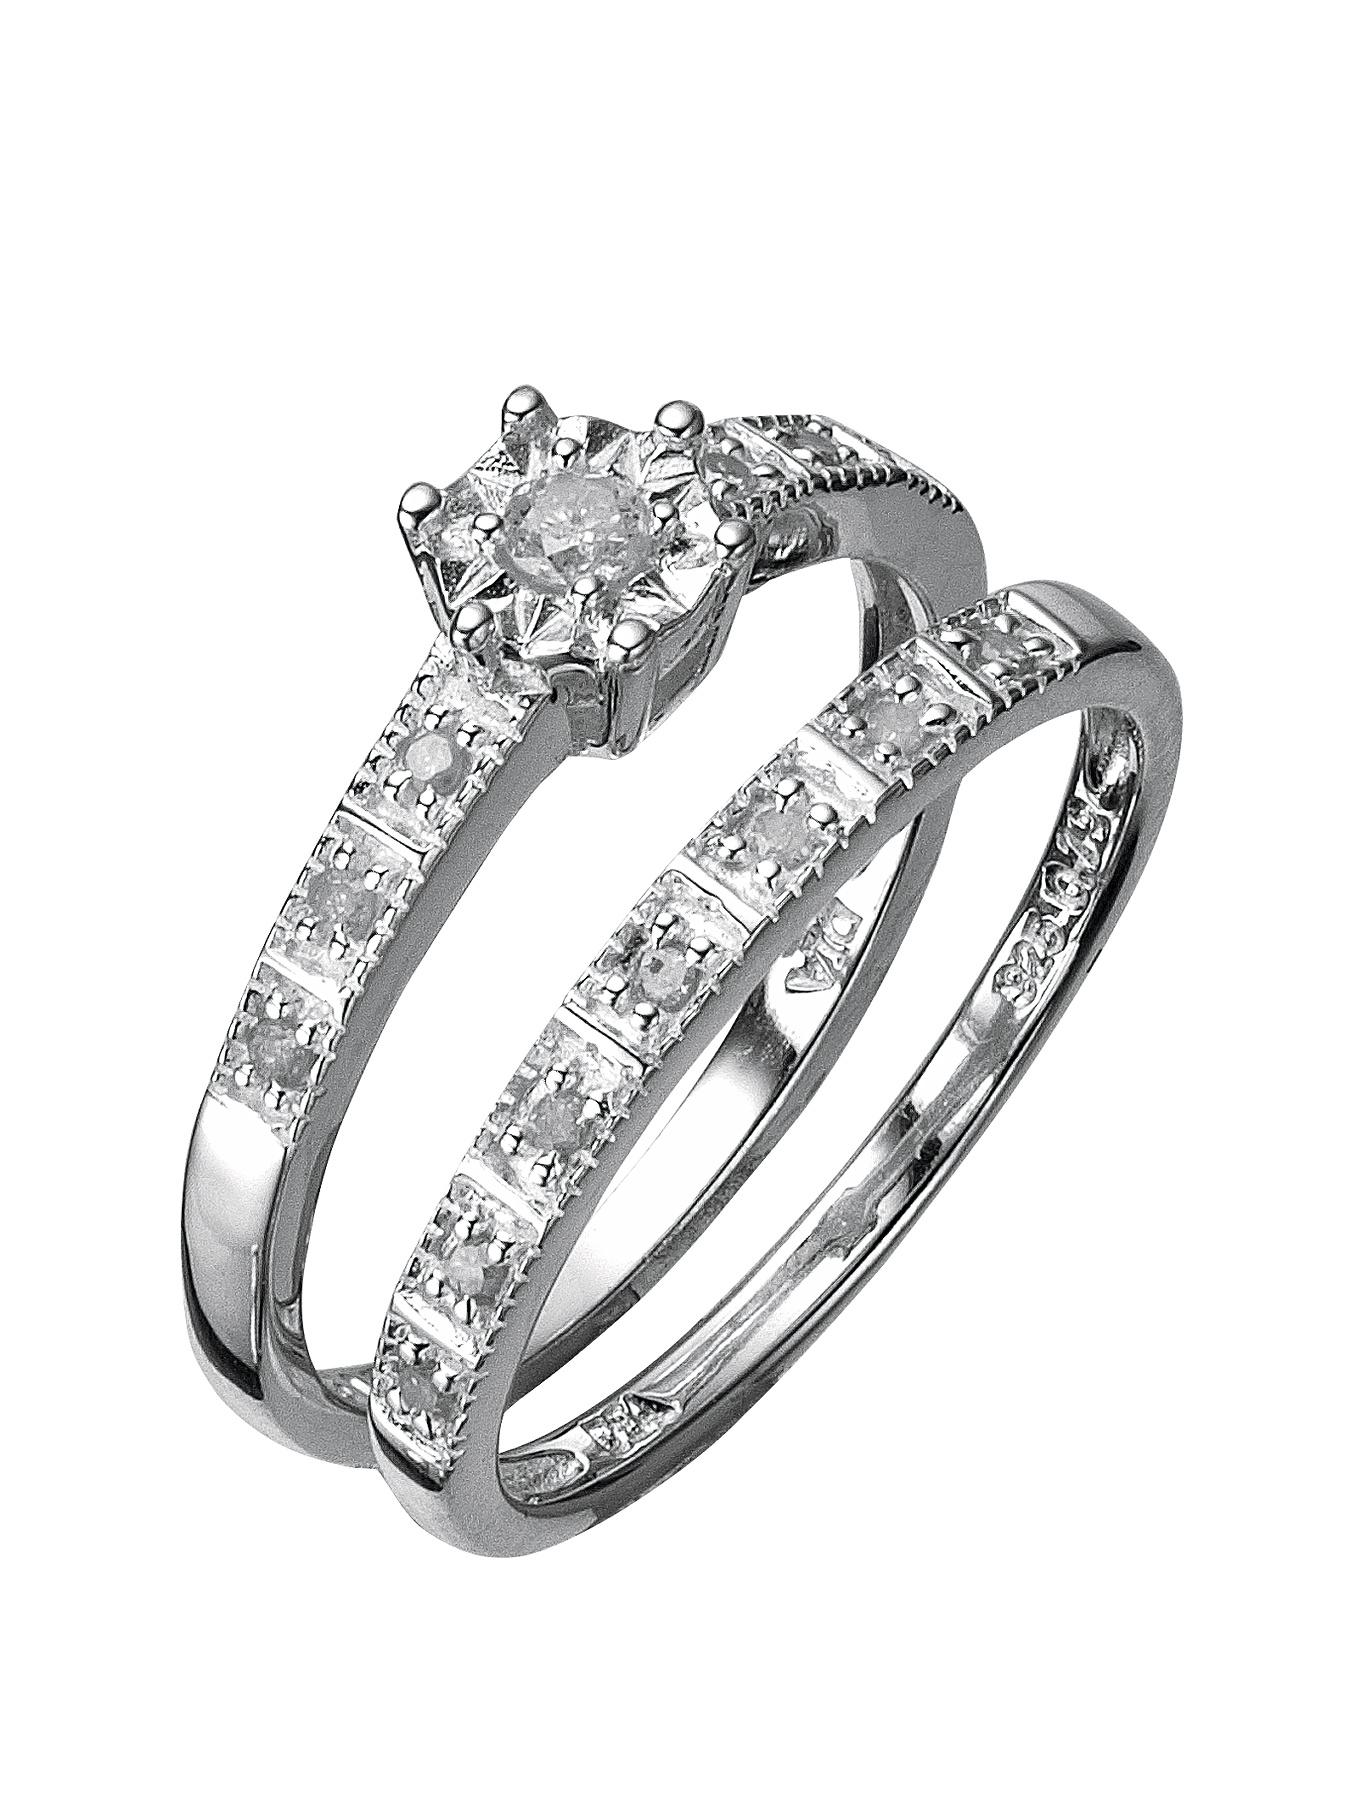 Sterling Silver 13 Point Diamond Bridal Set